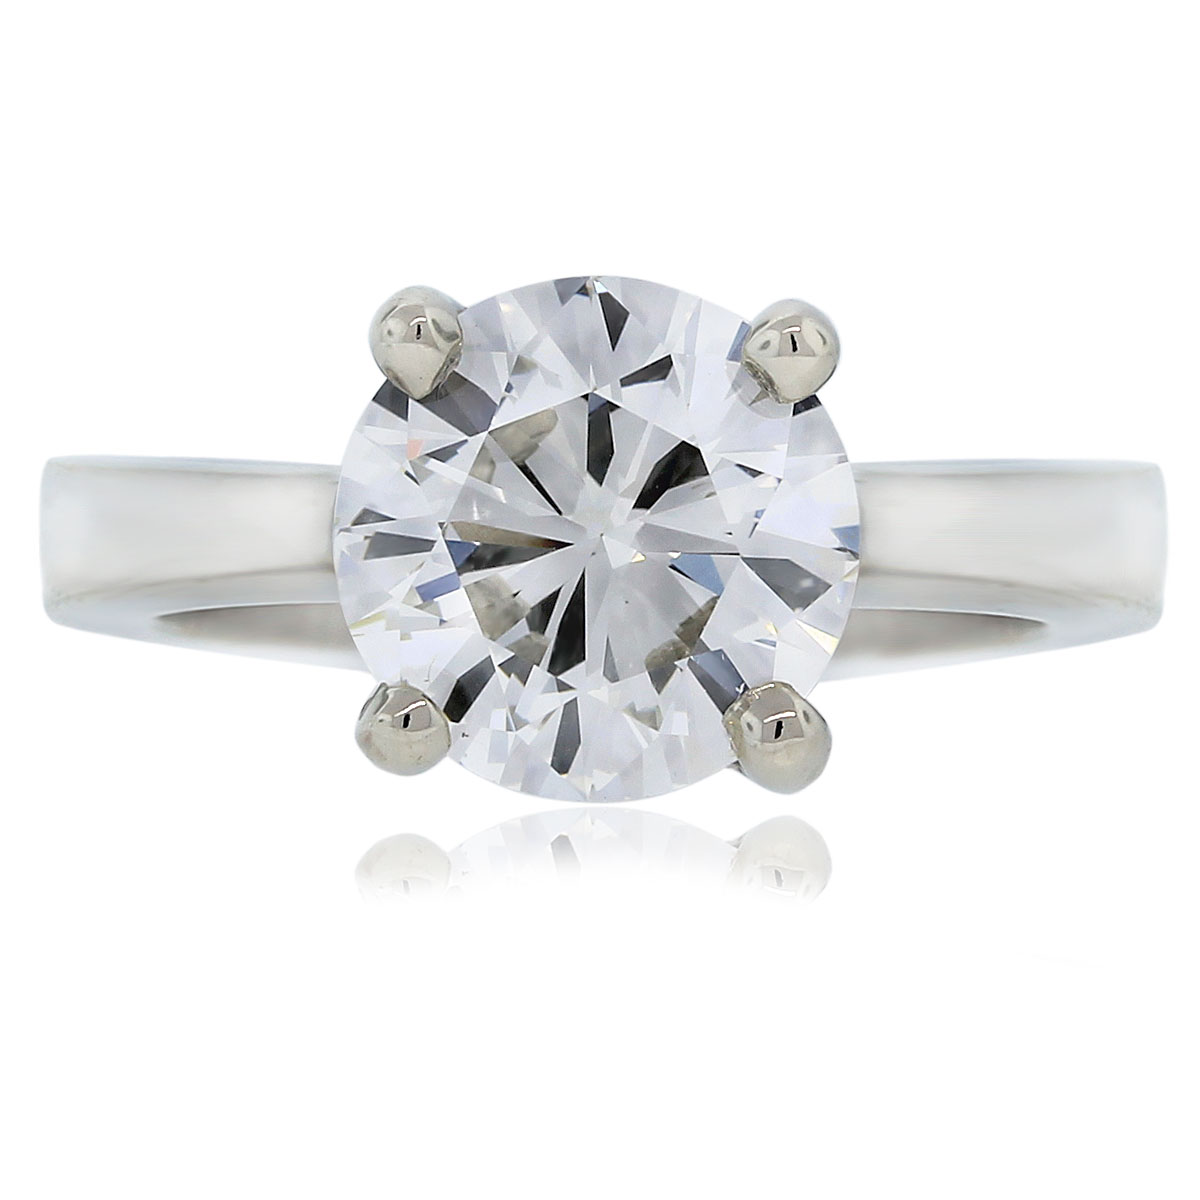 14k White Gold 3.01ct Round Brilliant Solitaire Engagement Ring